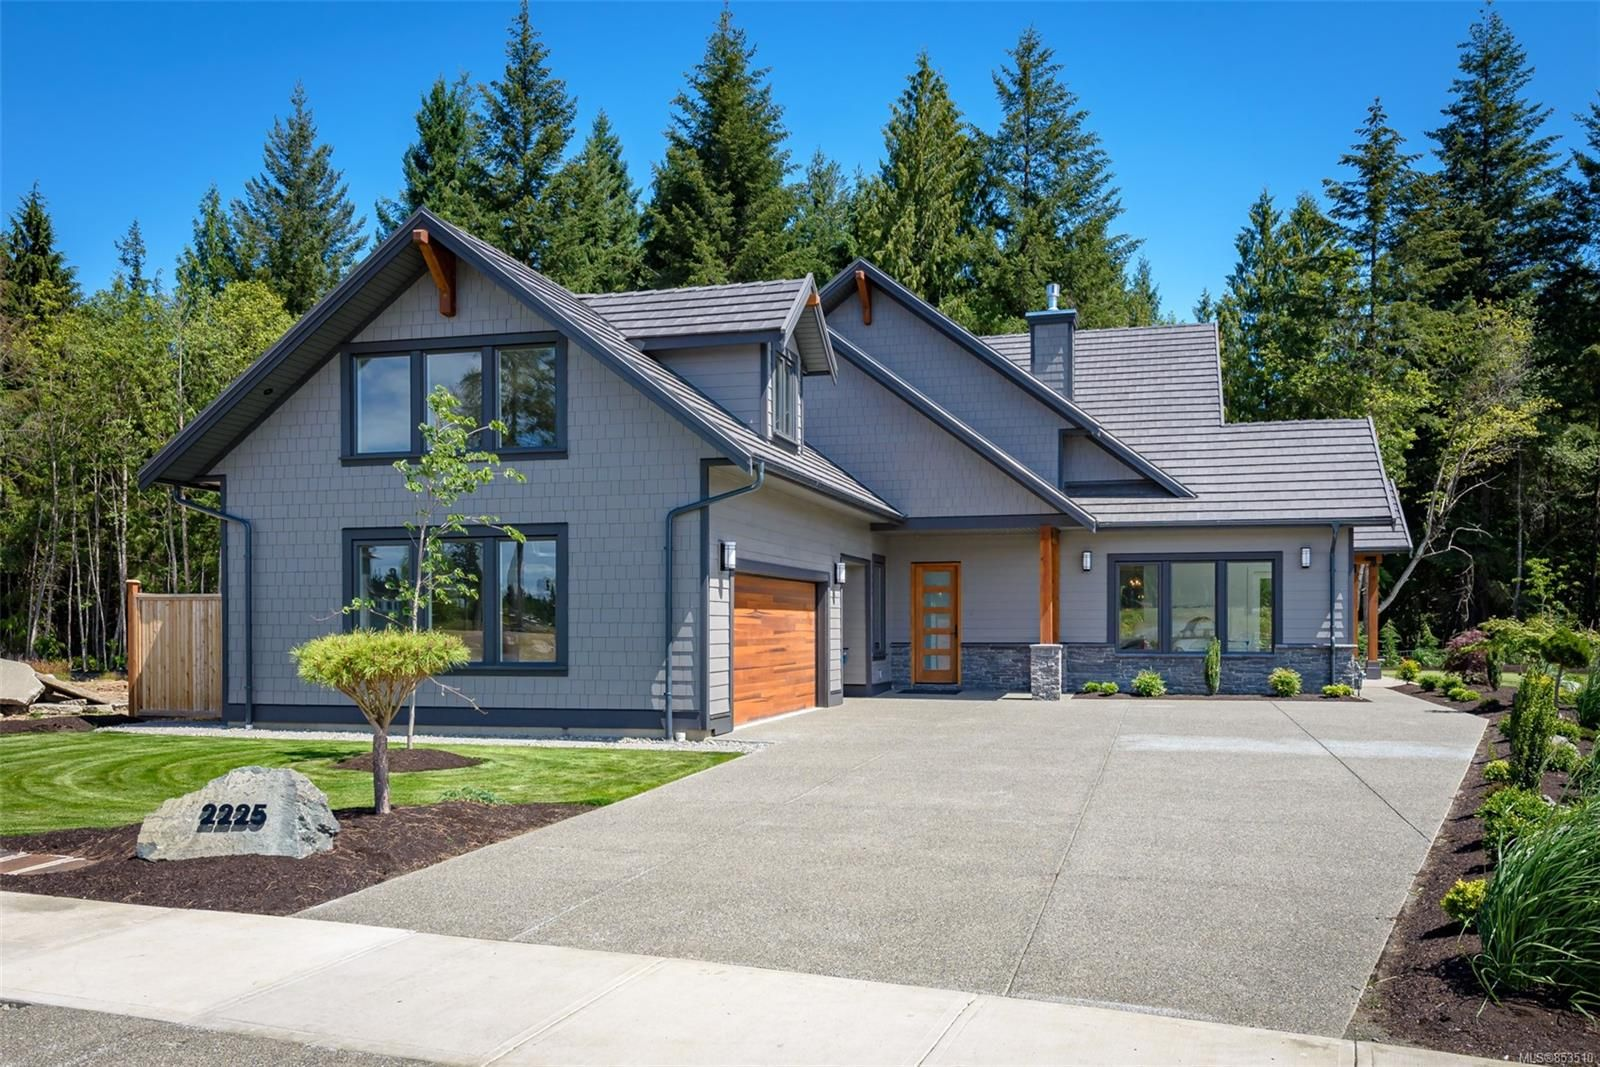 Main Photo: 2225 Crown Isle Dr in : CV Crown Isle House for sale (Comox Valley)  : MLS®# 853510